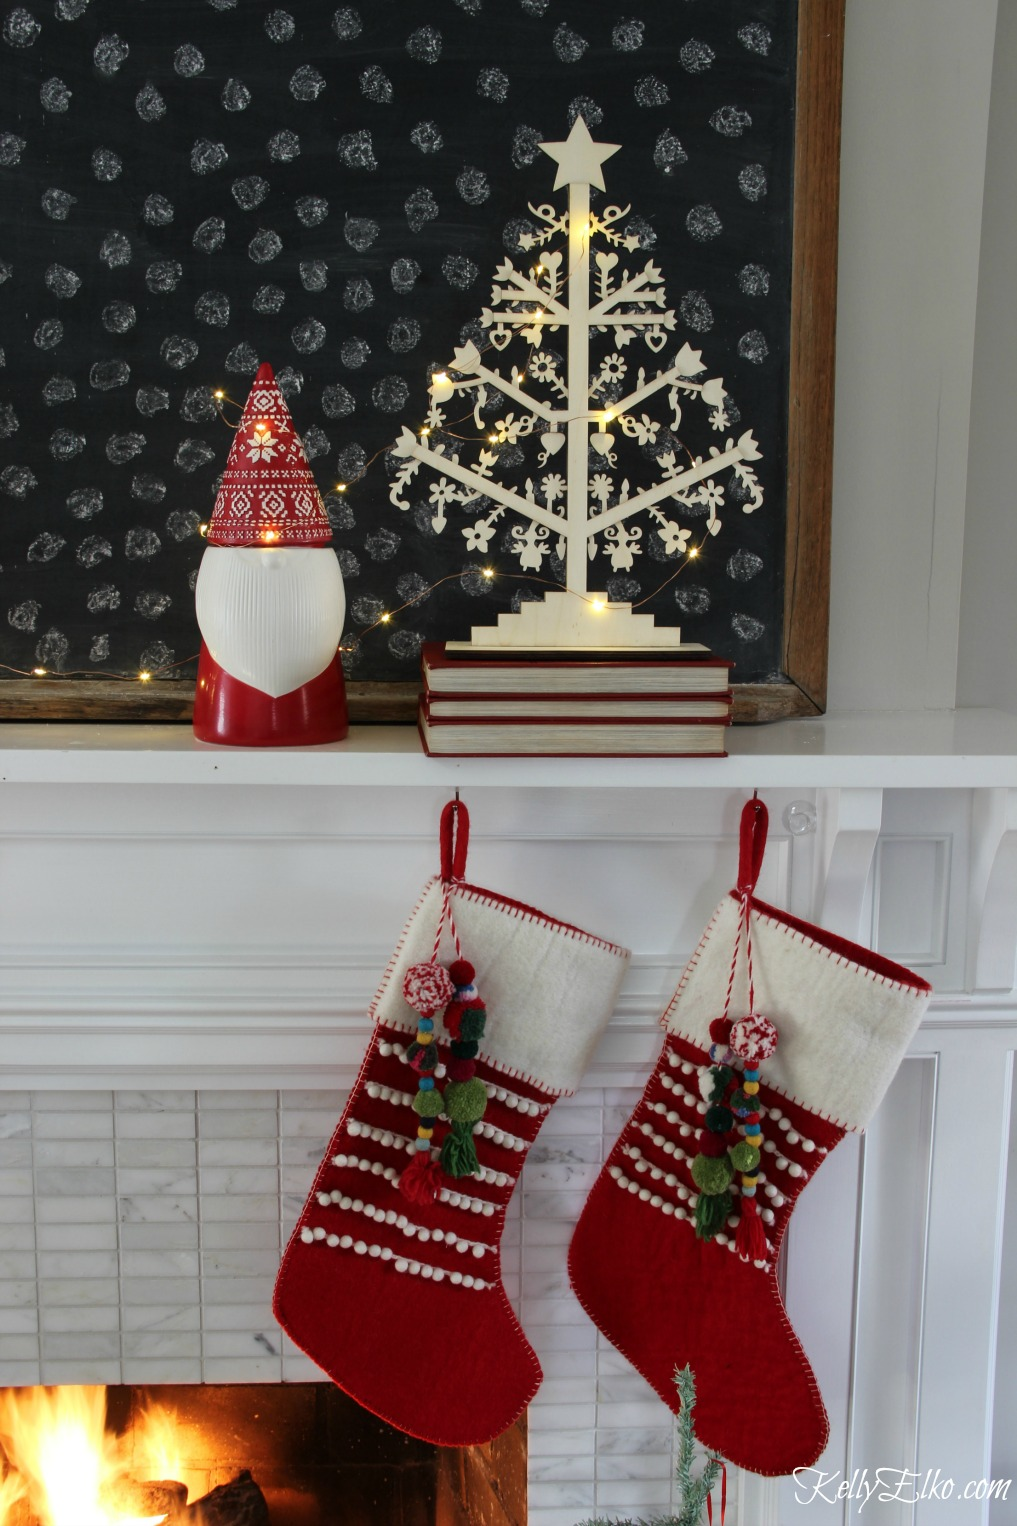 Christmas Home Tour - love this mantel with gnome and pom pom stockings kellyelko.com